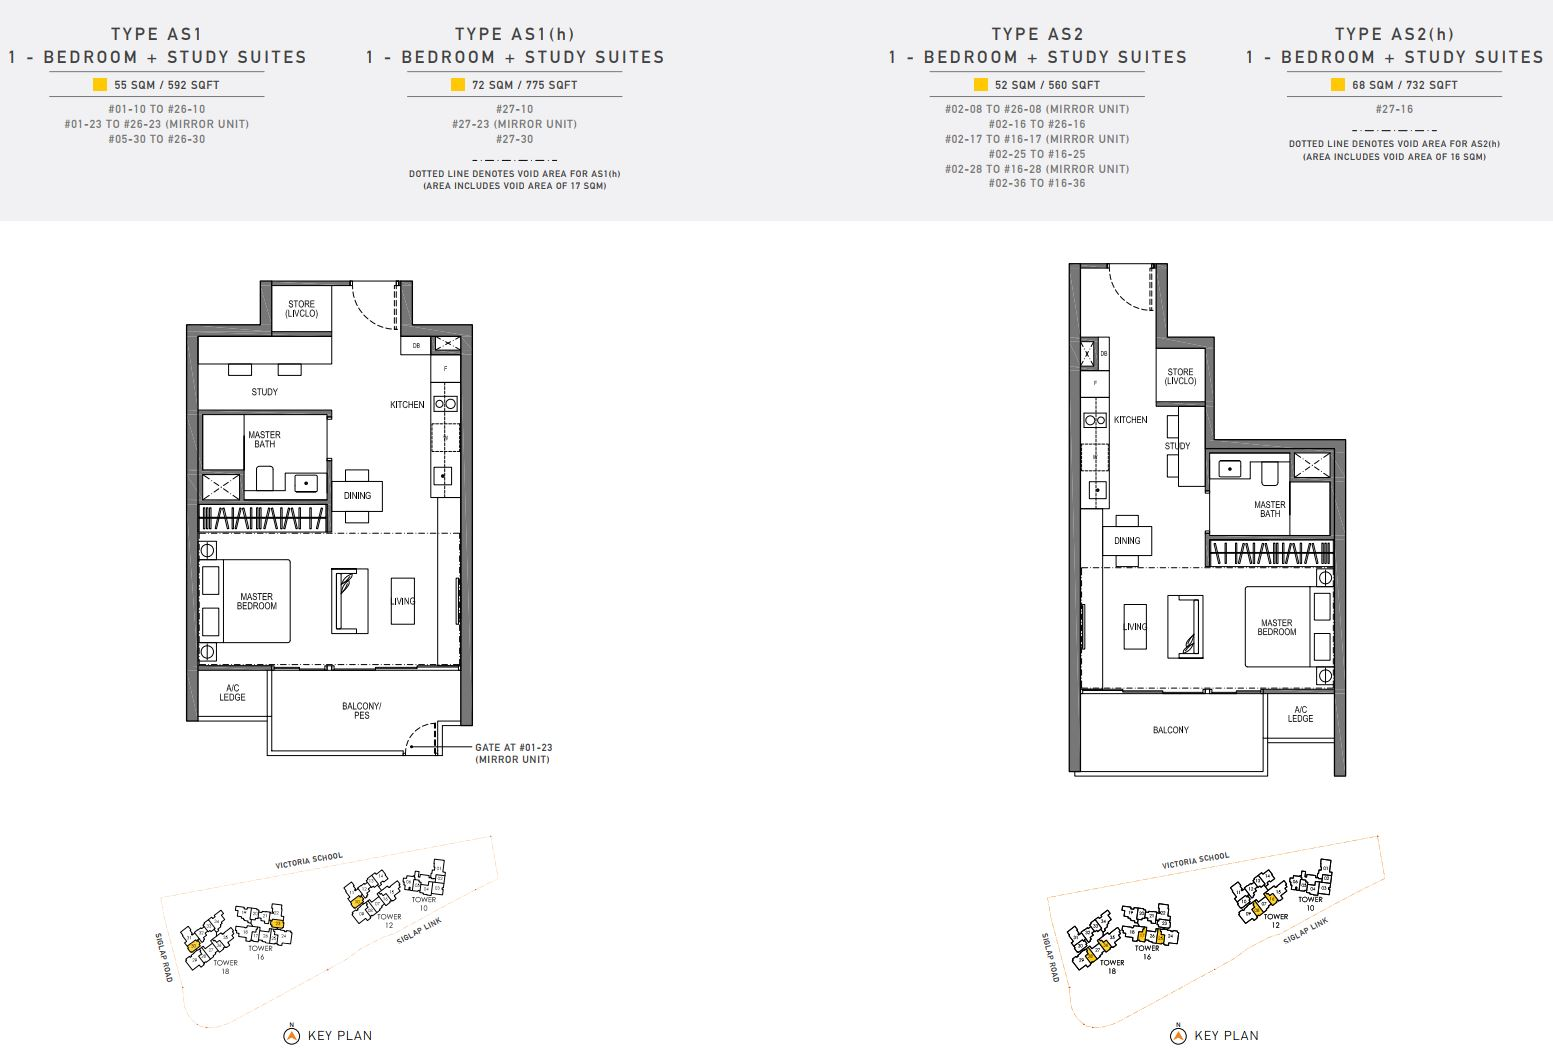 Seaside Residences FloorPlan - 1 Bedroom + Study Suites